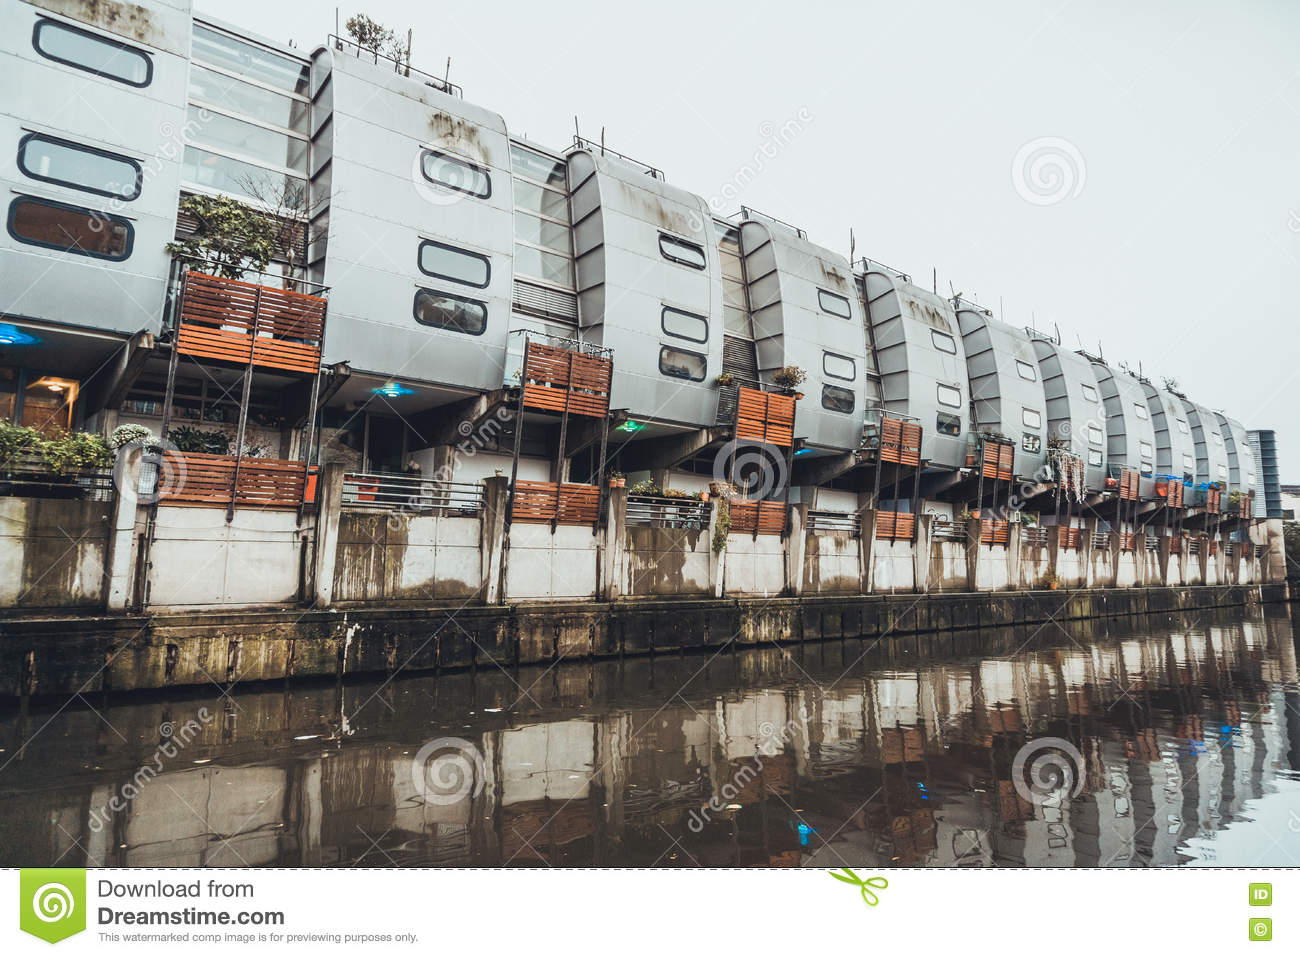 Grand Union Canal Walk Houses In Camden, London Stock Photo.